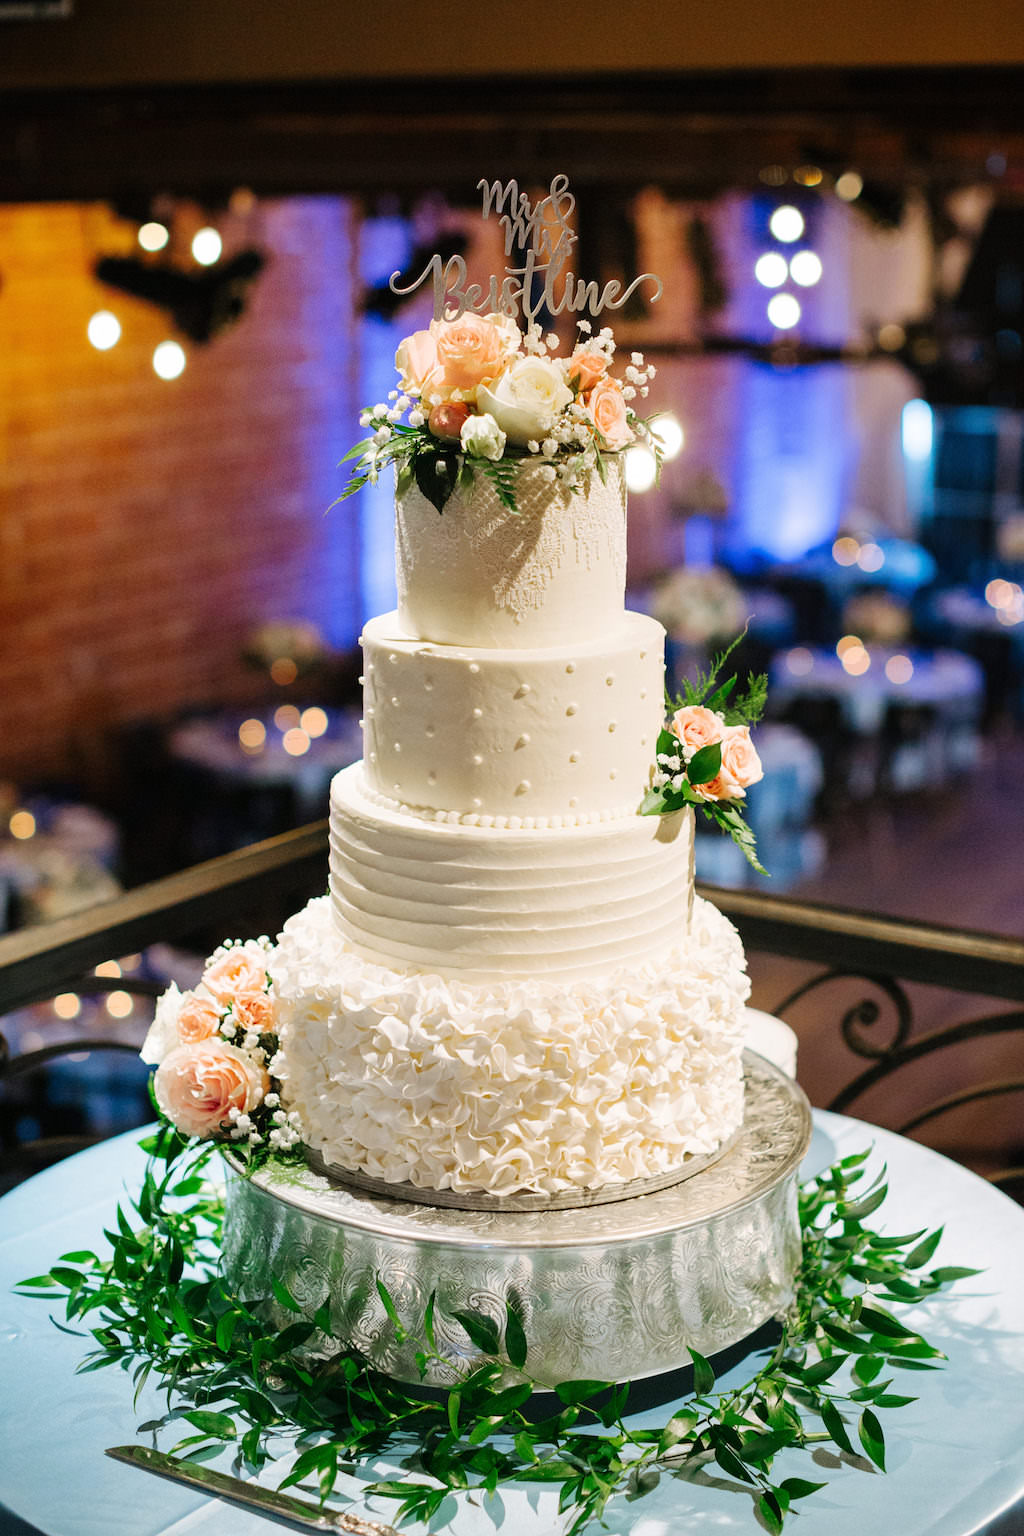 Elegant, Four Tier, White Buttercream Cake, With Multi Textured Layers, Peach Florals, Babies Breath, Greenery, Custom Mr. and Mrs. Cake Topper | Downtown St. Pete Historic Wedding Venue NOVA 535